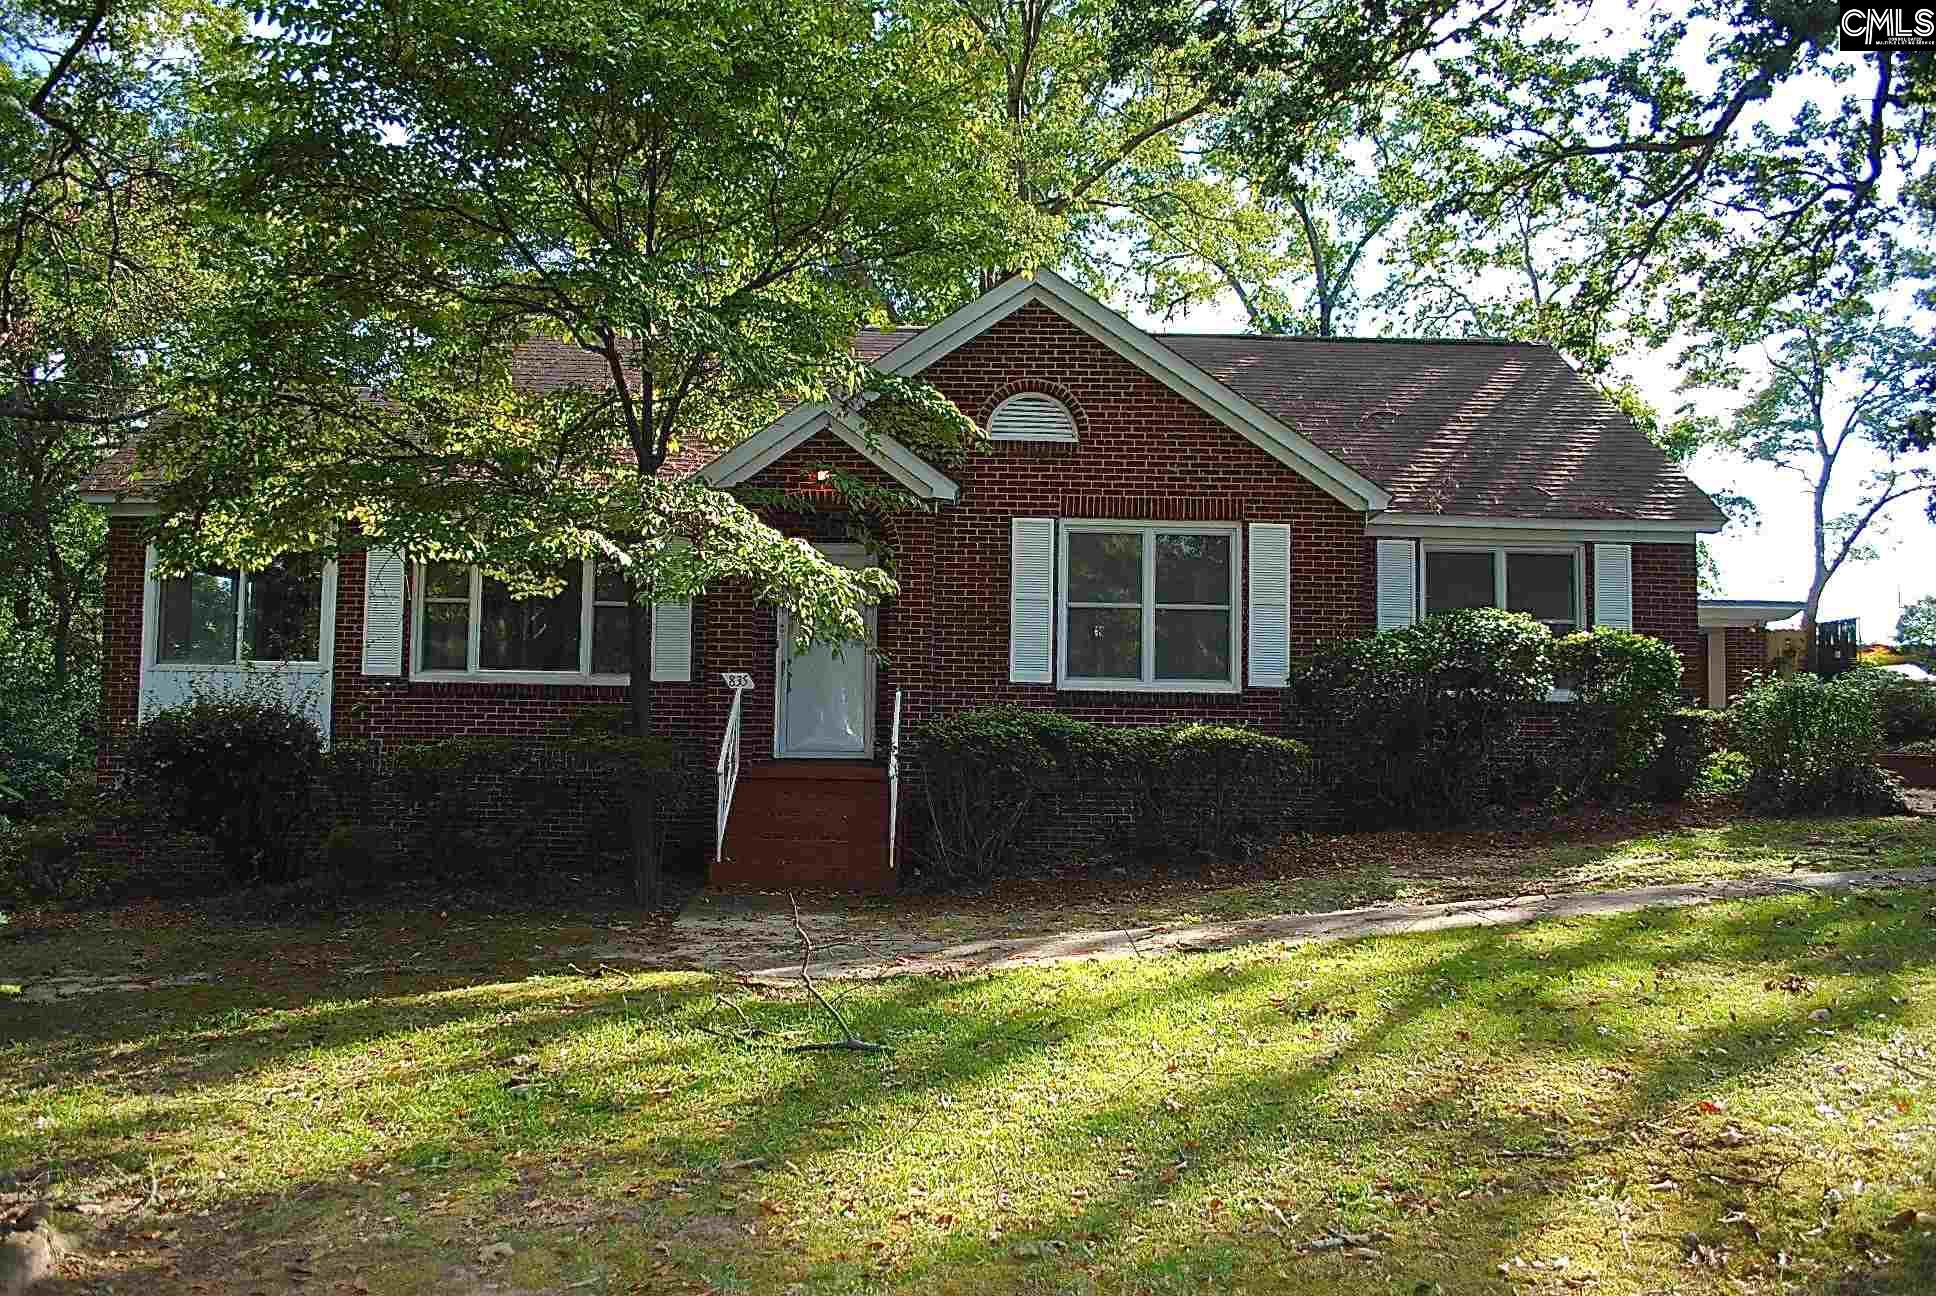 835 Greenville Columbia, SC 29210